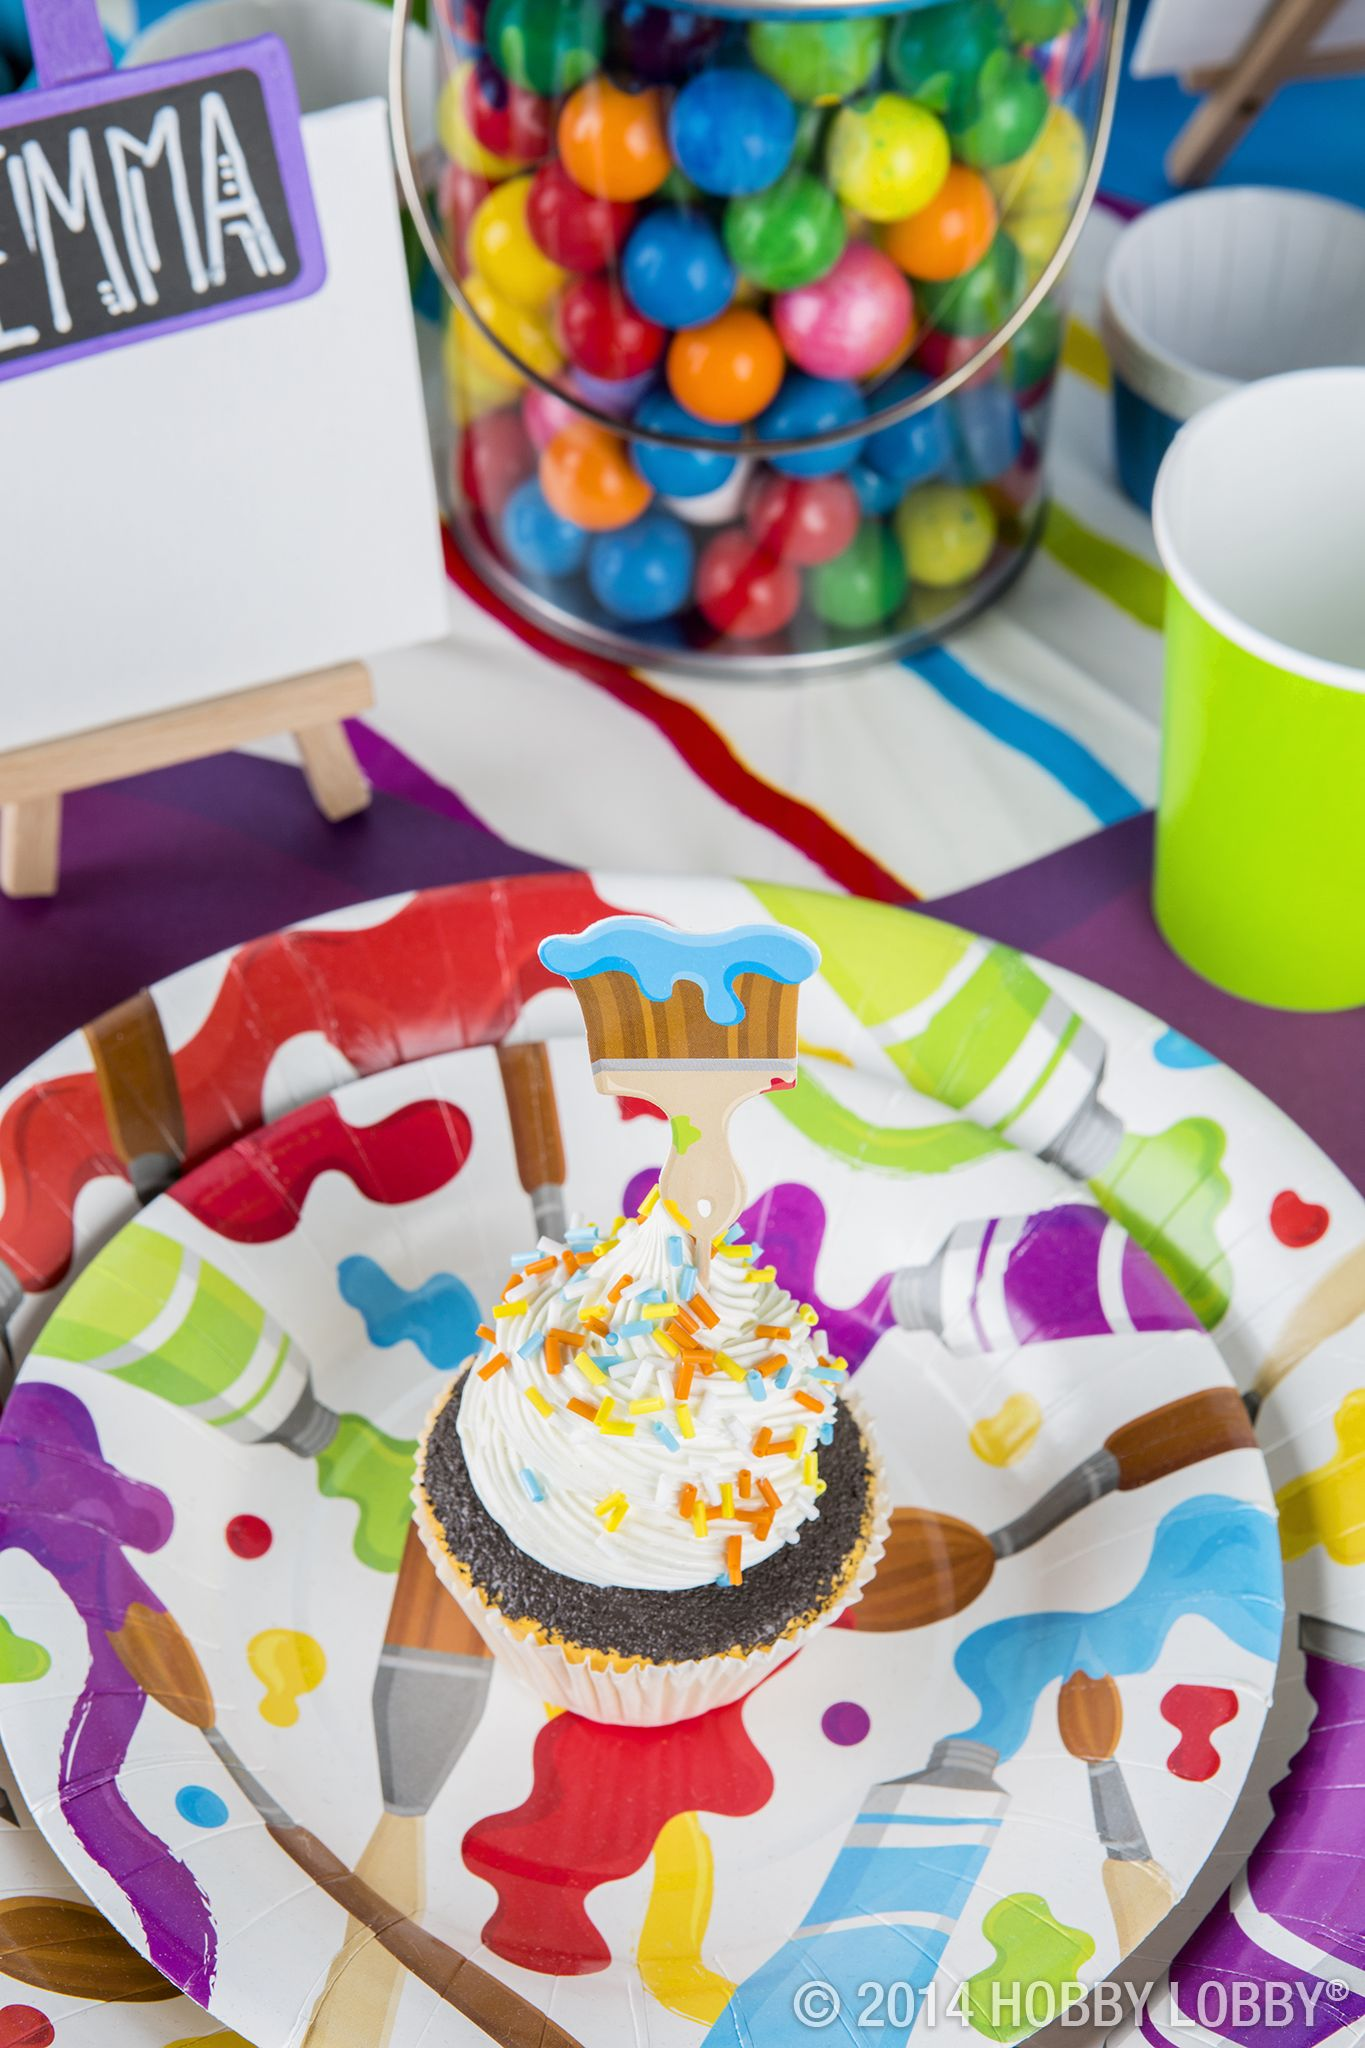 Bring Some Pizazz To Your Party With These Paint Themed Supplies